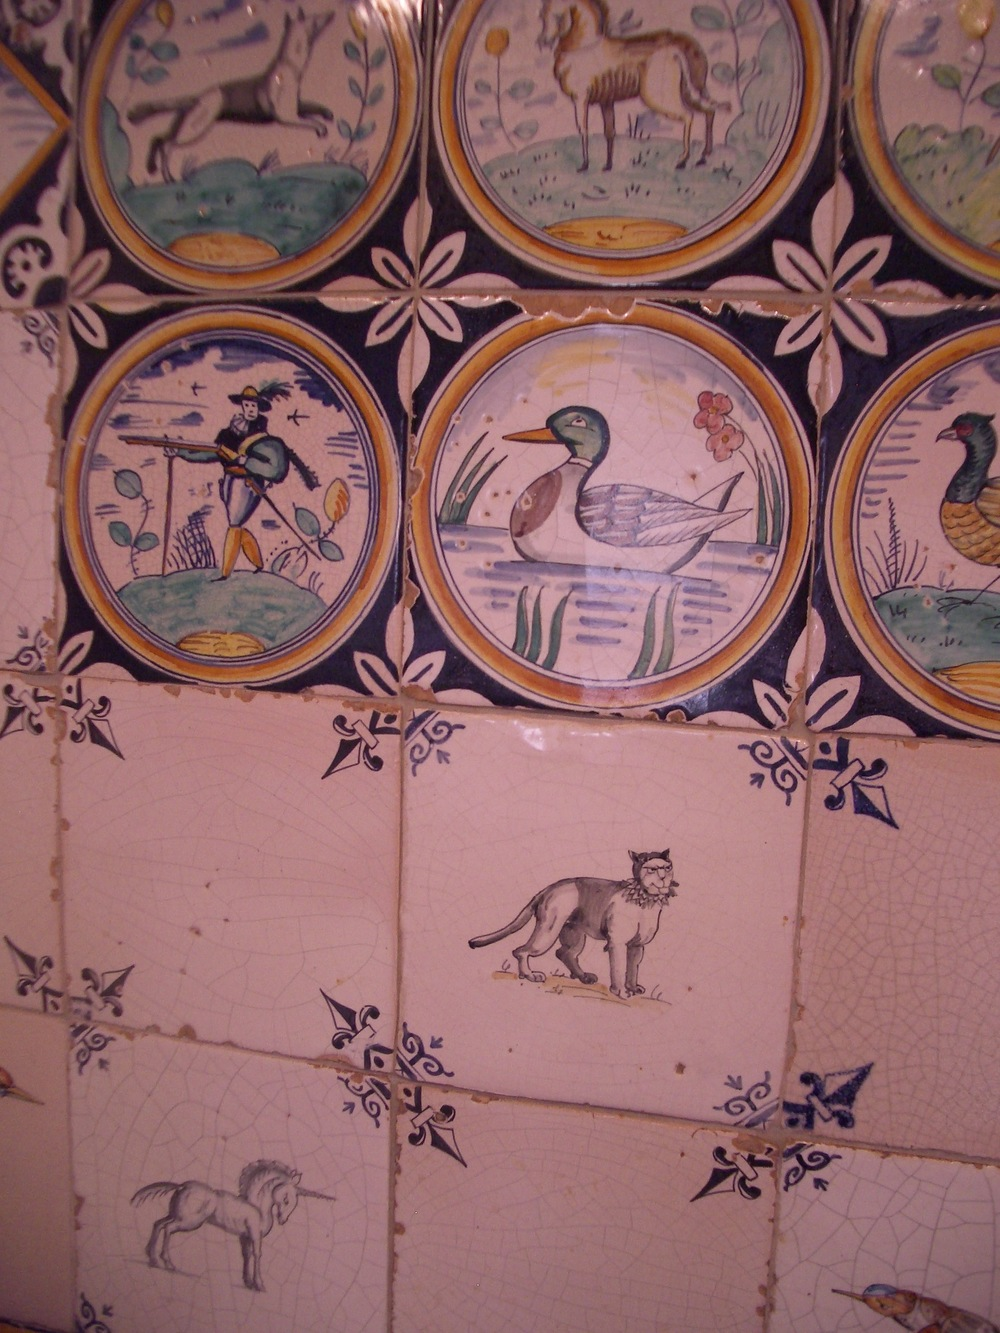 Delftware Tiles.  Behind the kitchen Wolf range is a panel of reproduction early and mid-seventeenth century Dutch tiles, some depict soldiers and animals set within borders of concentric circles,  others are mid-seventeenth century Dutch animal tiles with ox-head corner motifs and plain tiles with   flour-de-lis   corner motifs.  The corner motifs are executed in the reserving technique (such that when four corners meet, they create  an ornamental design).